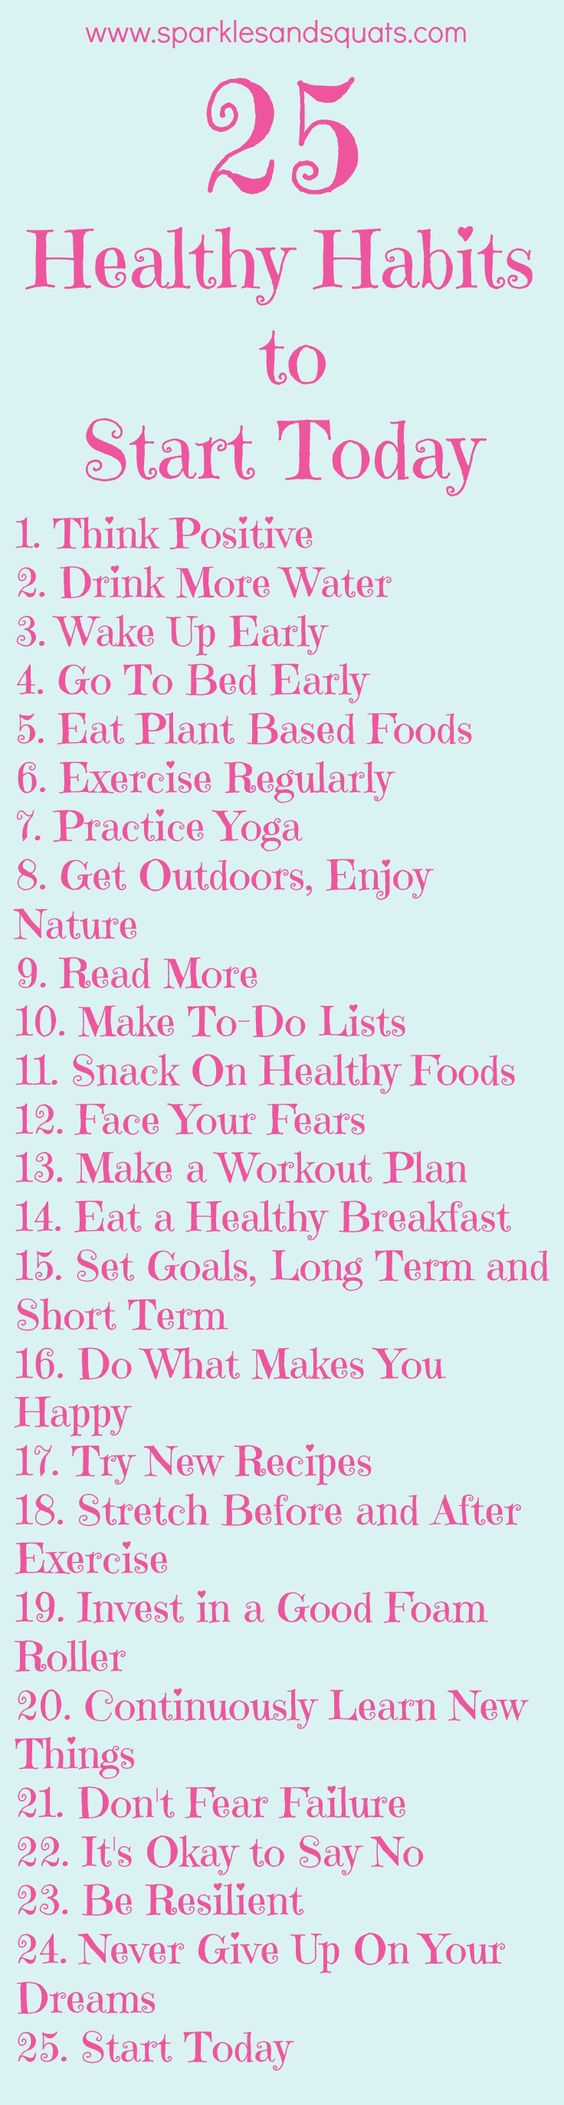 25 Healthy Habits to Start Today: